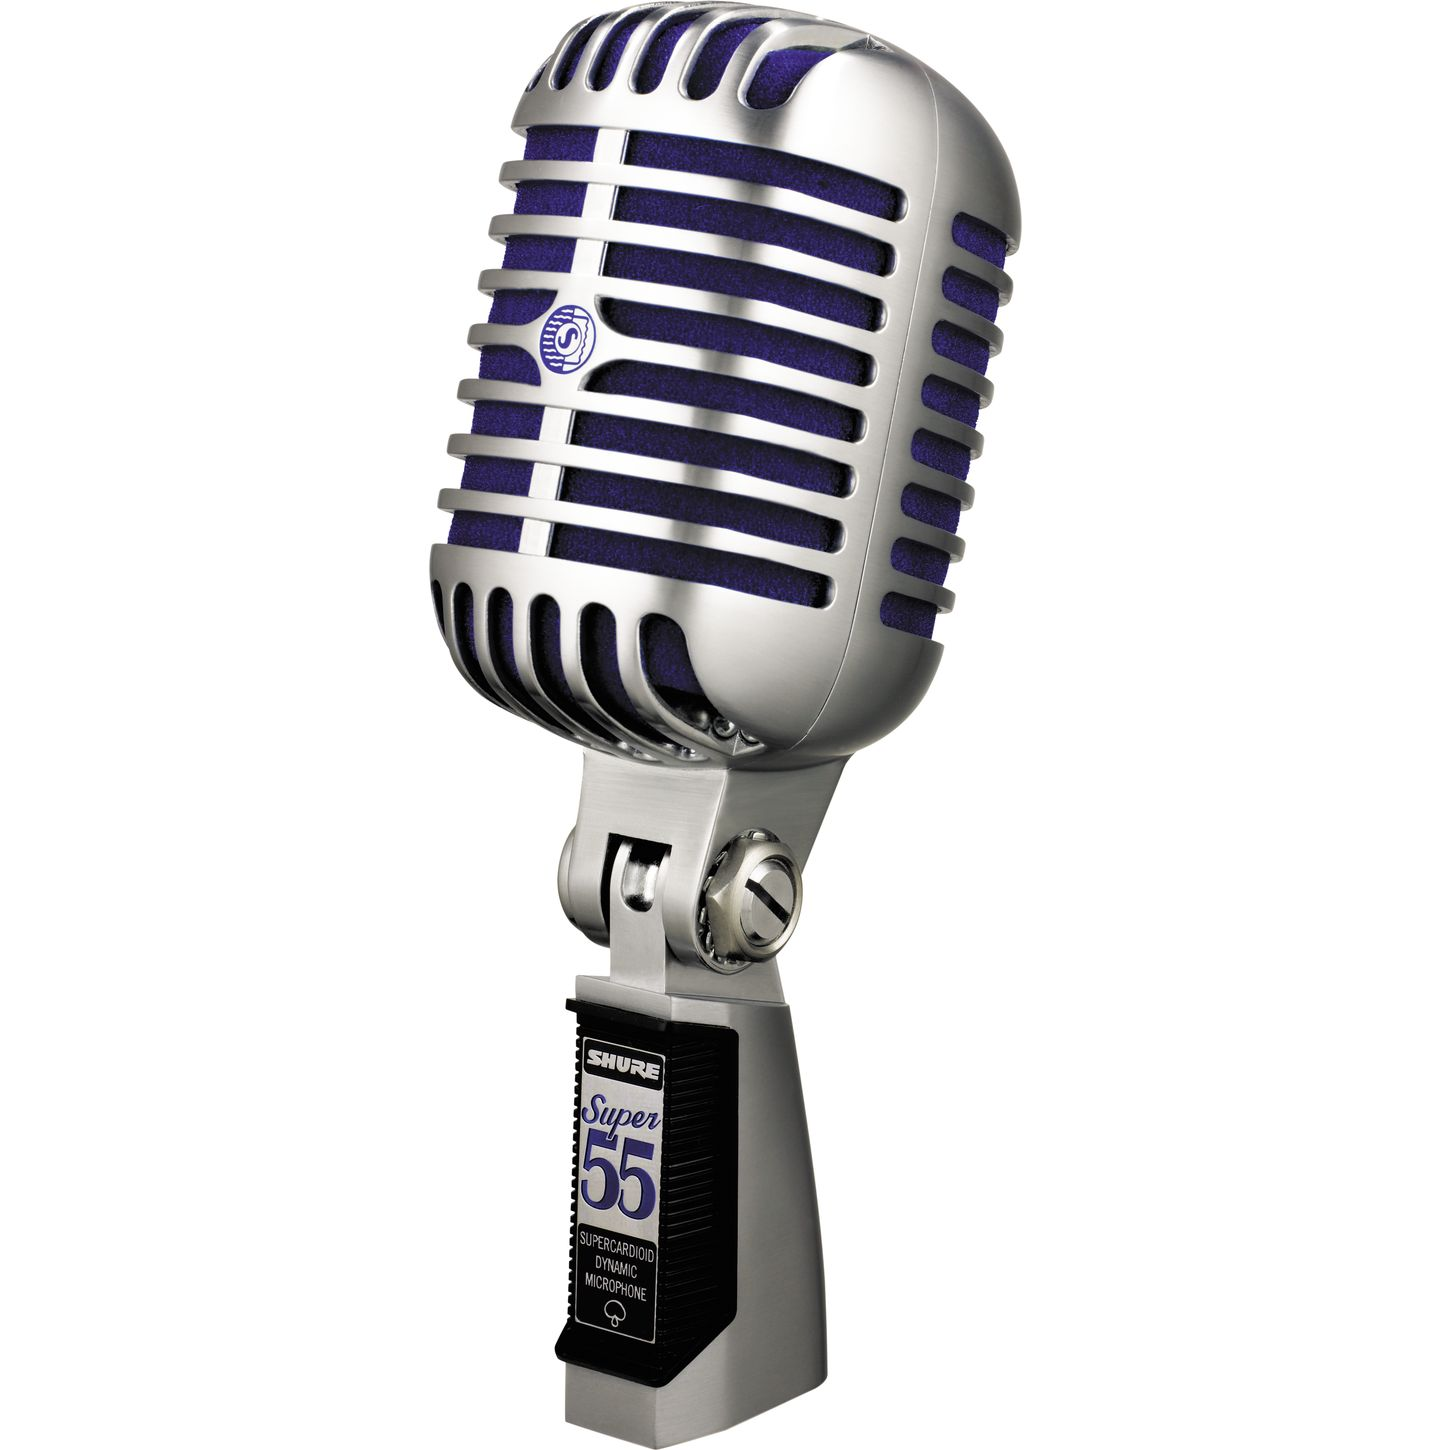 microphone stand clip art - Microphone HD PNG